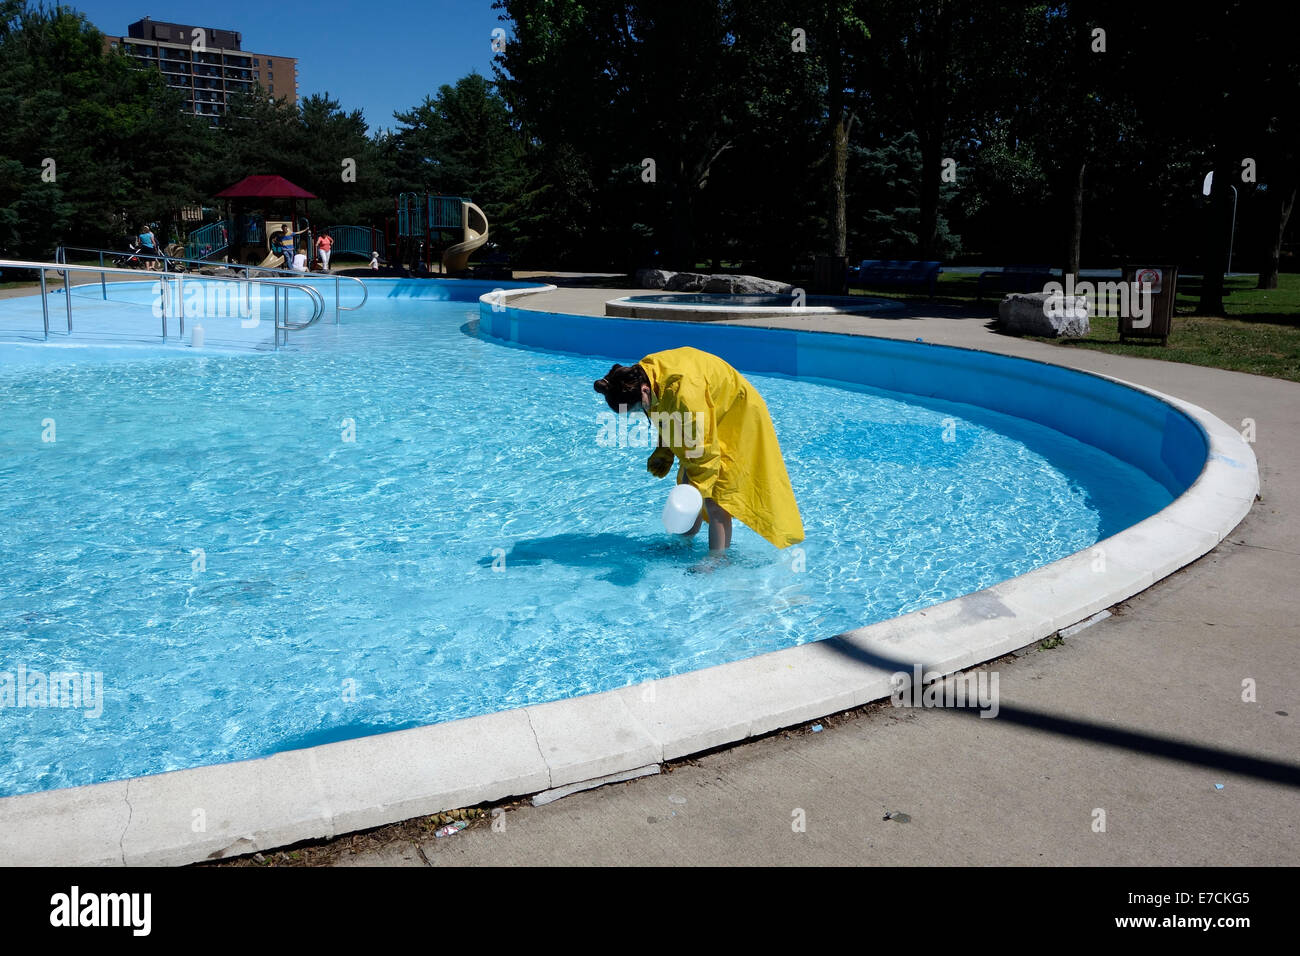 Come on kids and ply in my toxic pool - Stock Image